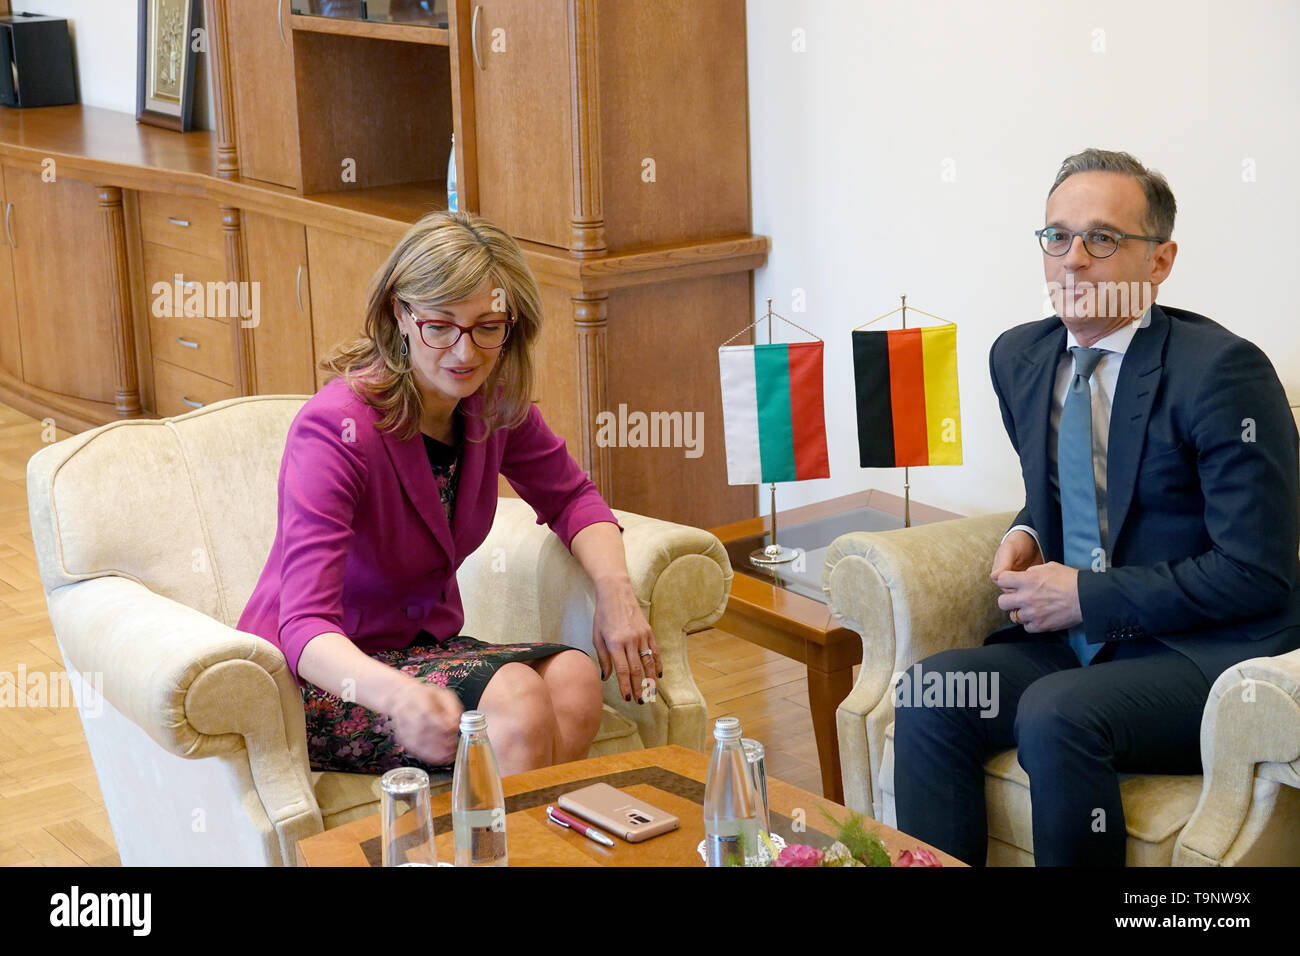 Sofia, Bulgaria. 20th May, 2019. Heiko Maas (SPD), Federal Foreign Minister, meets Ekaterina Sachariewa, Foreign Minister of Bulgaria, for talks. Credit: Michael Fischer/dpa/Alamy Live News - Stock Image